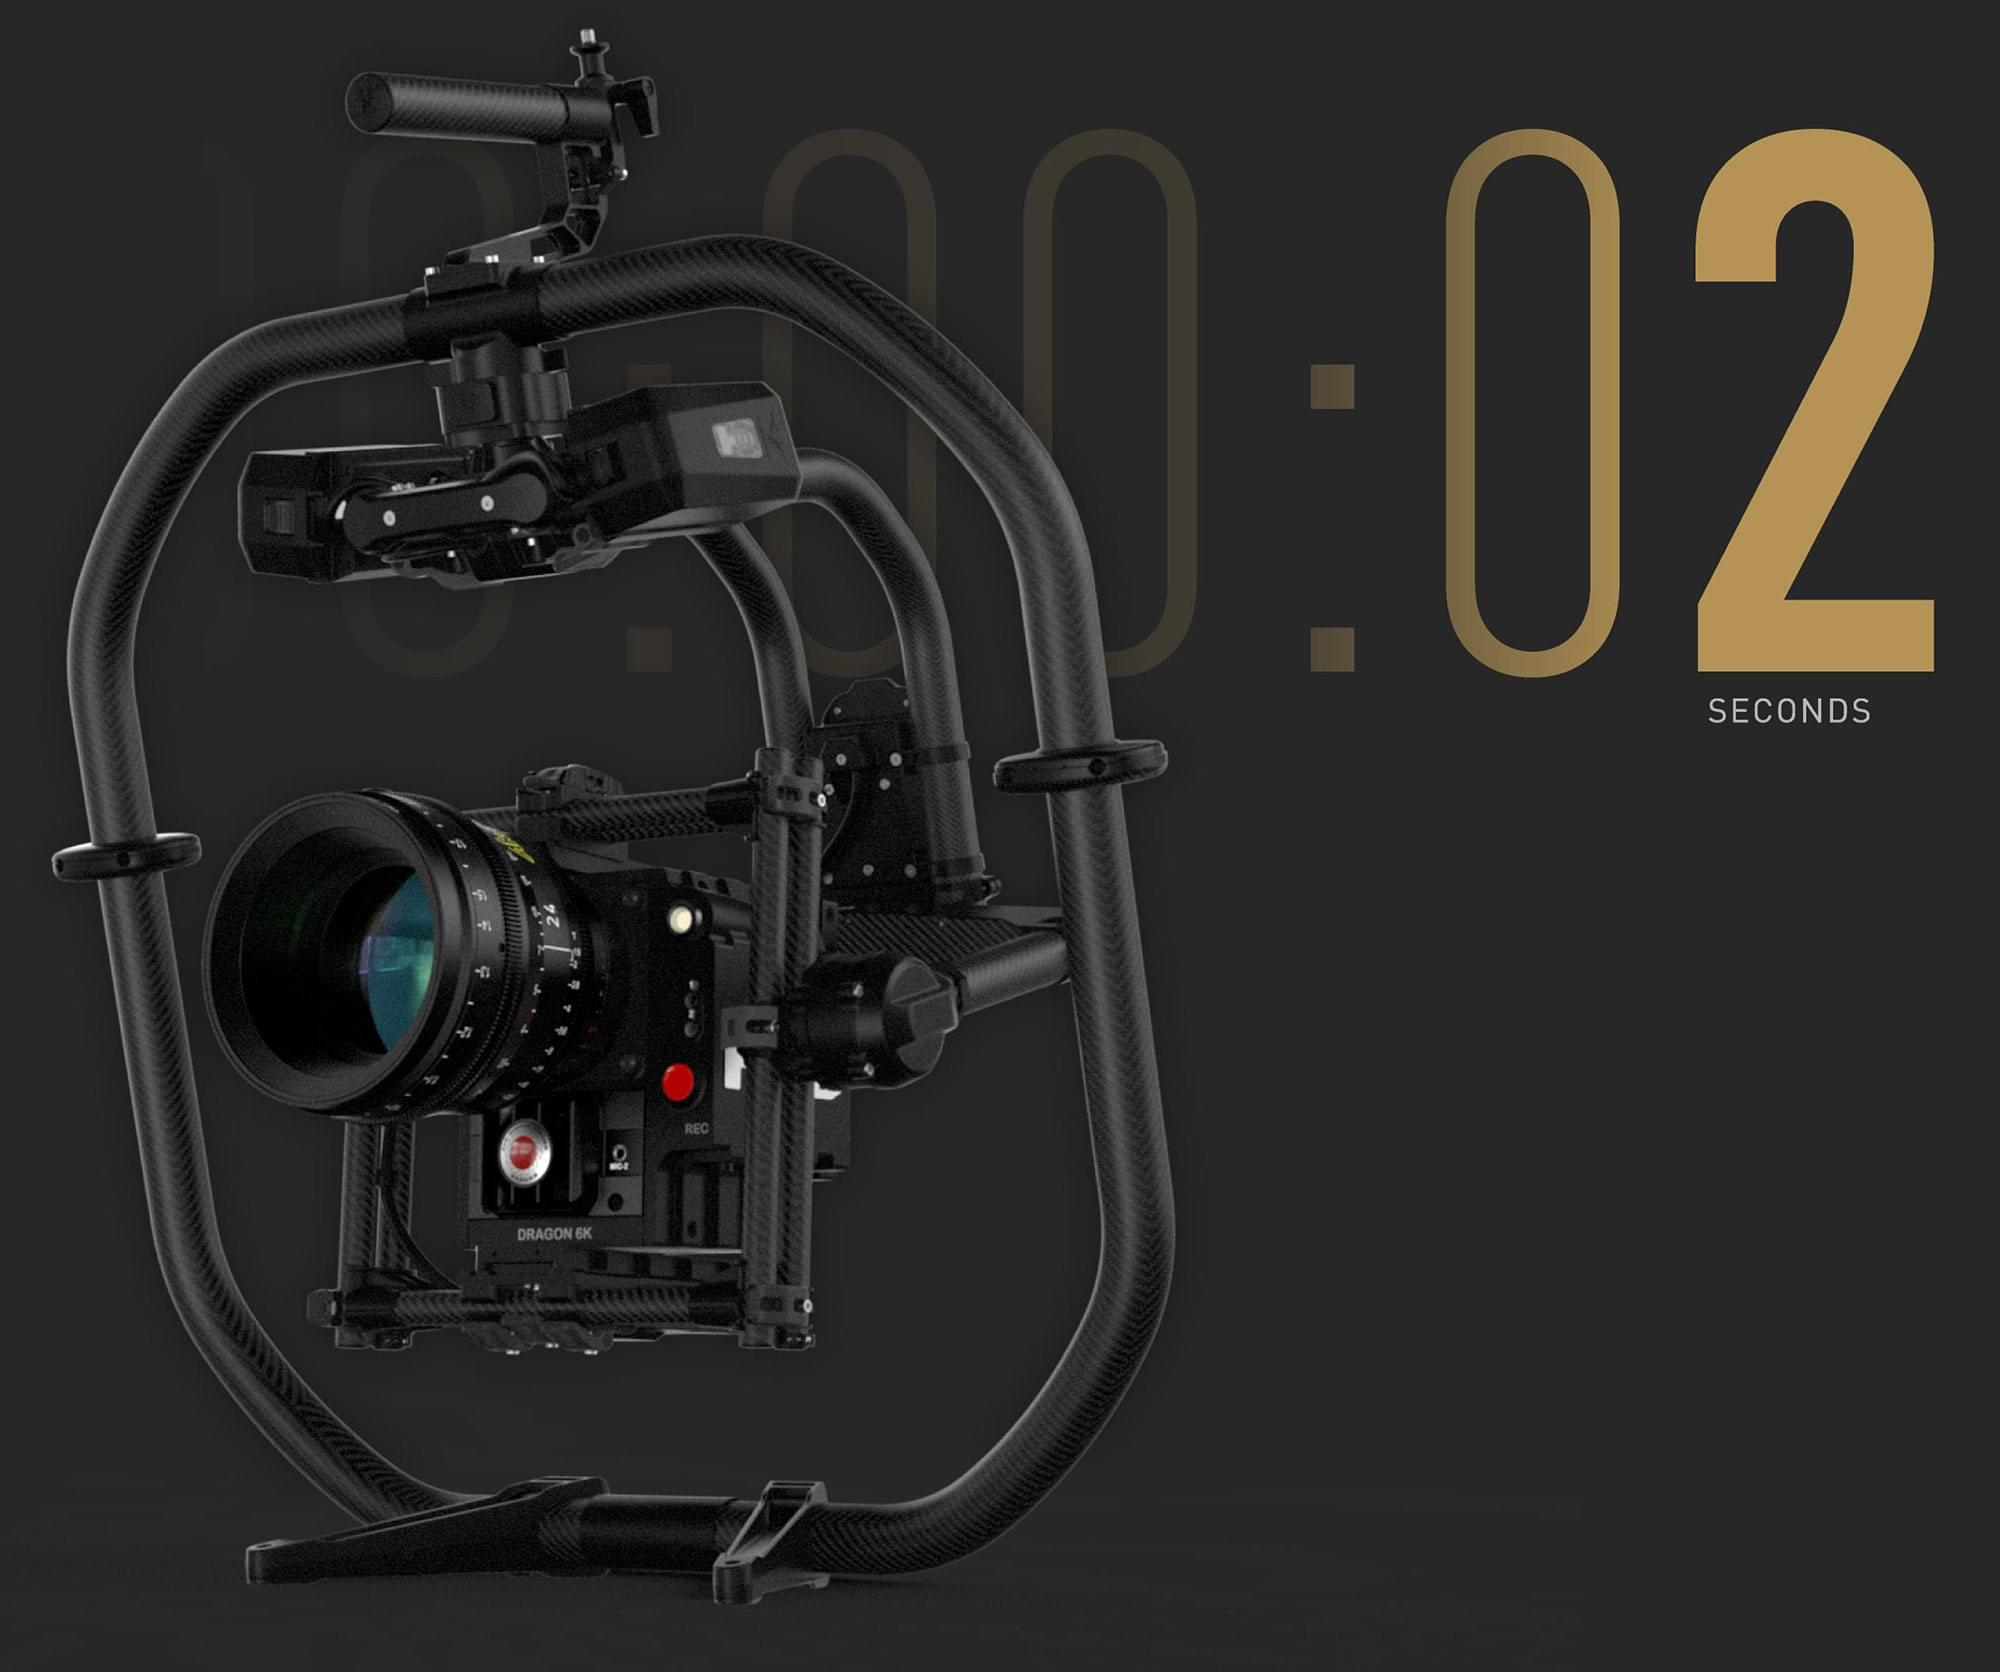 Mōvi Pro has a ~2 second boot time